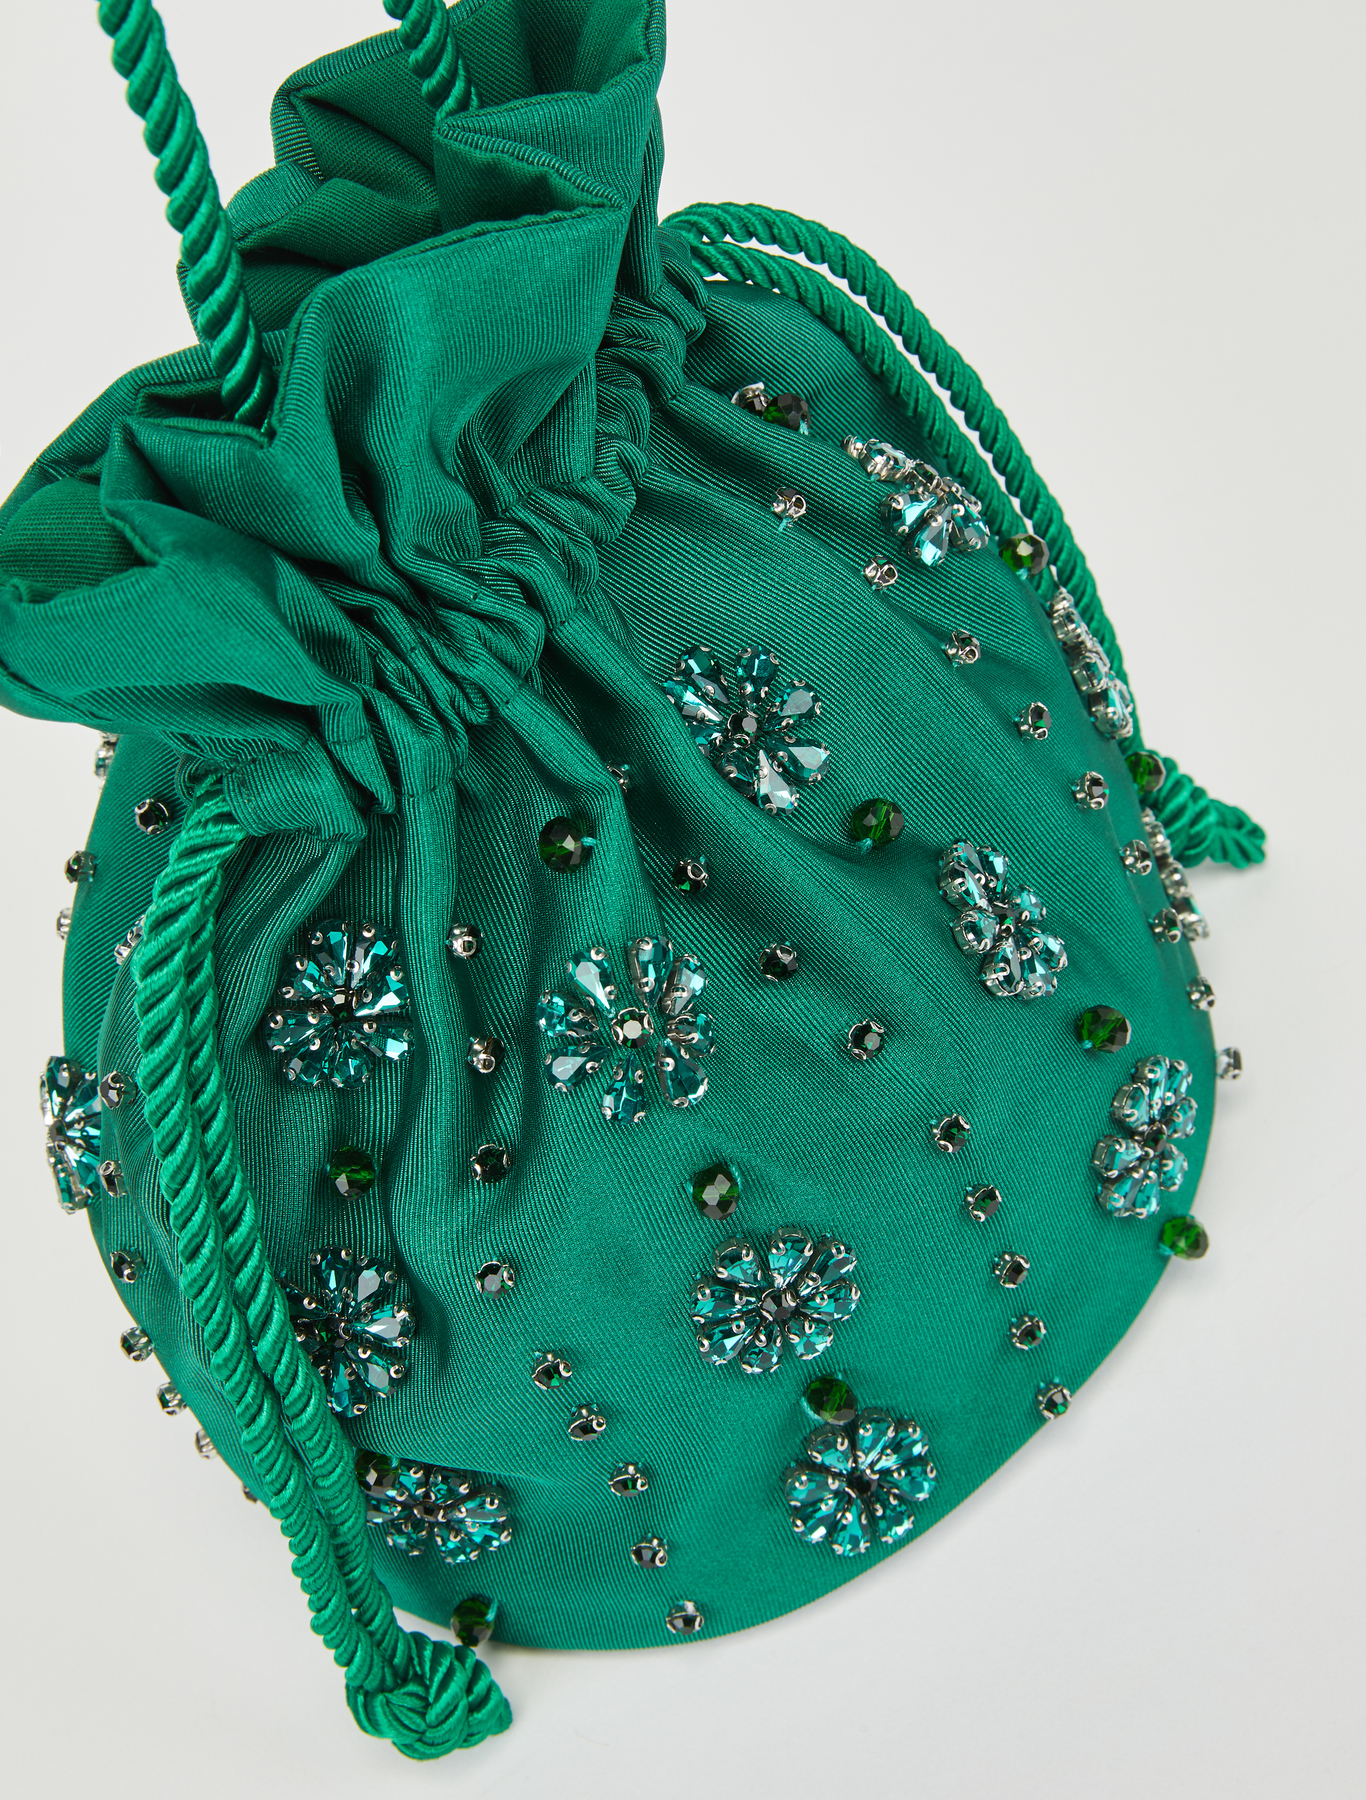 Maxi large bag with handles in green cotton water printed with shalimar flowers with key holderbag jewel